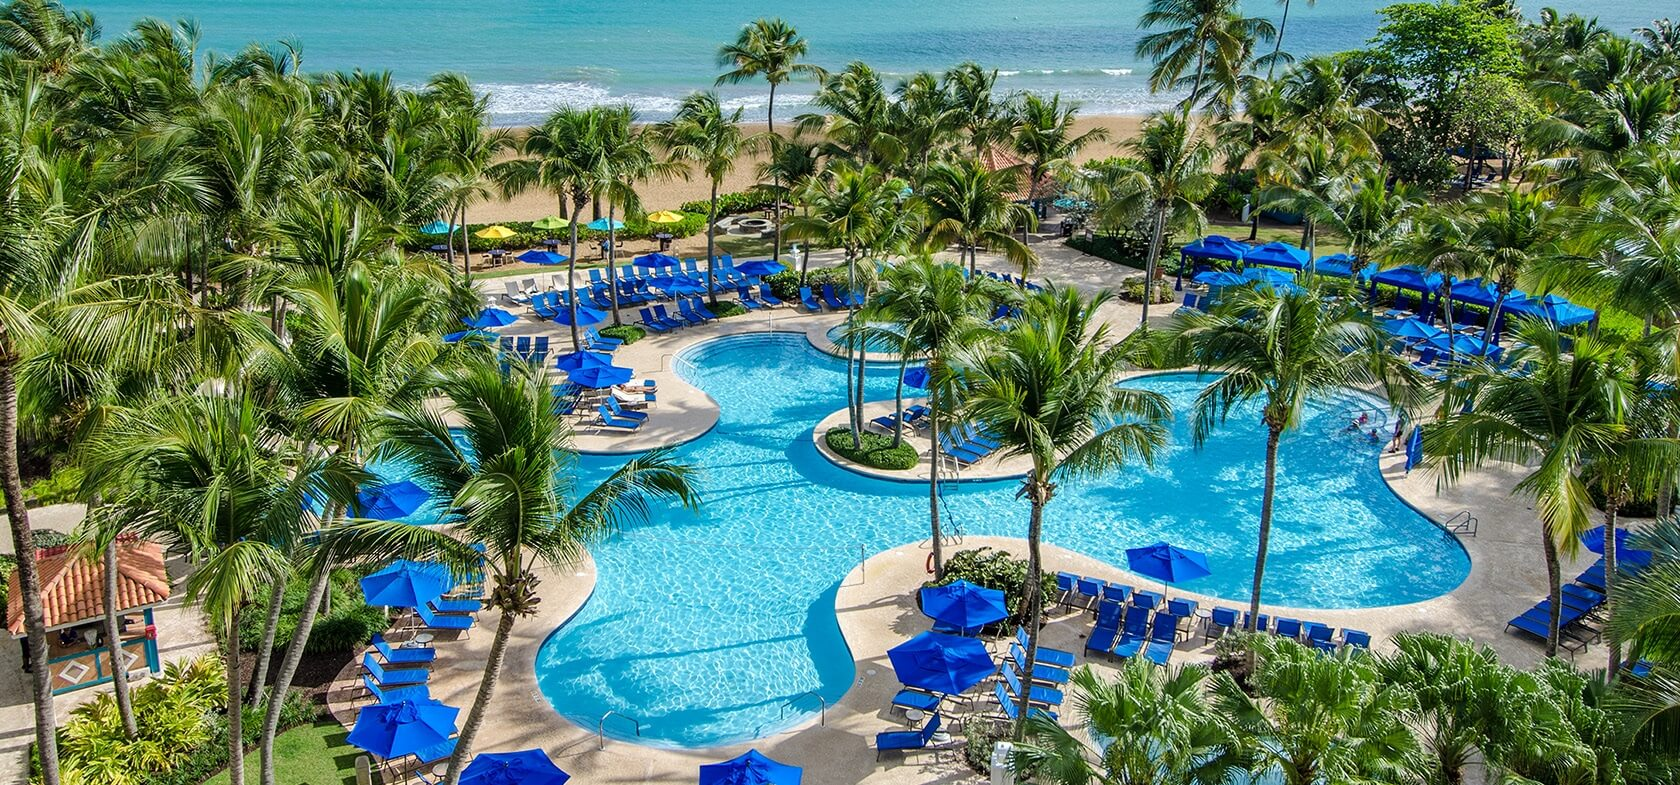 How to Transfer Points Between La Quinta and Wyndham for Awesome Redemptions